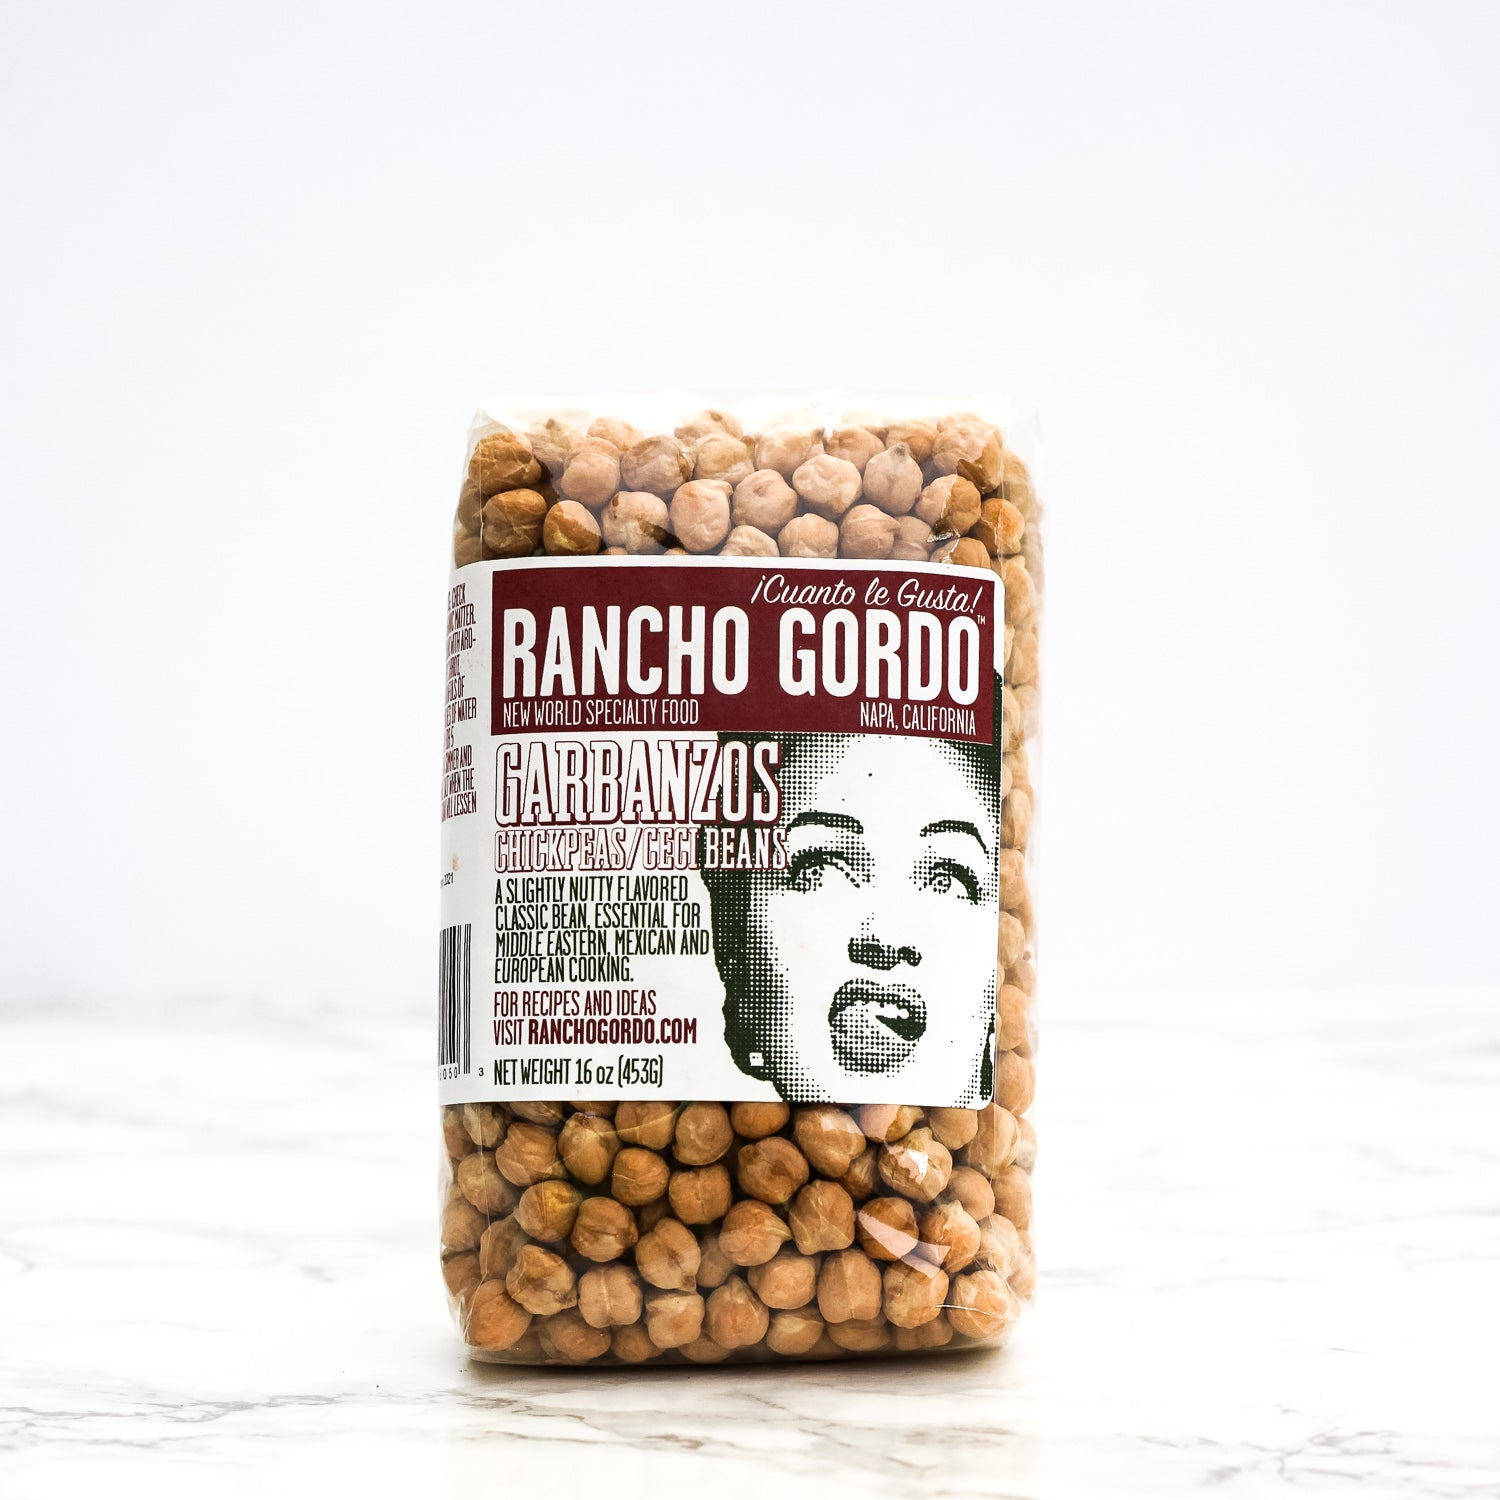 Rancho Gordo - Garbanzo Beans (Chickpea) - The Foodocracy